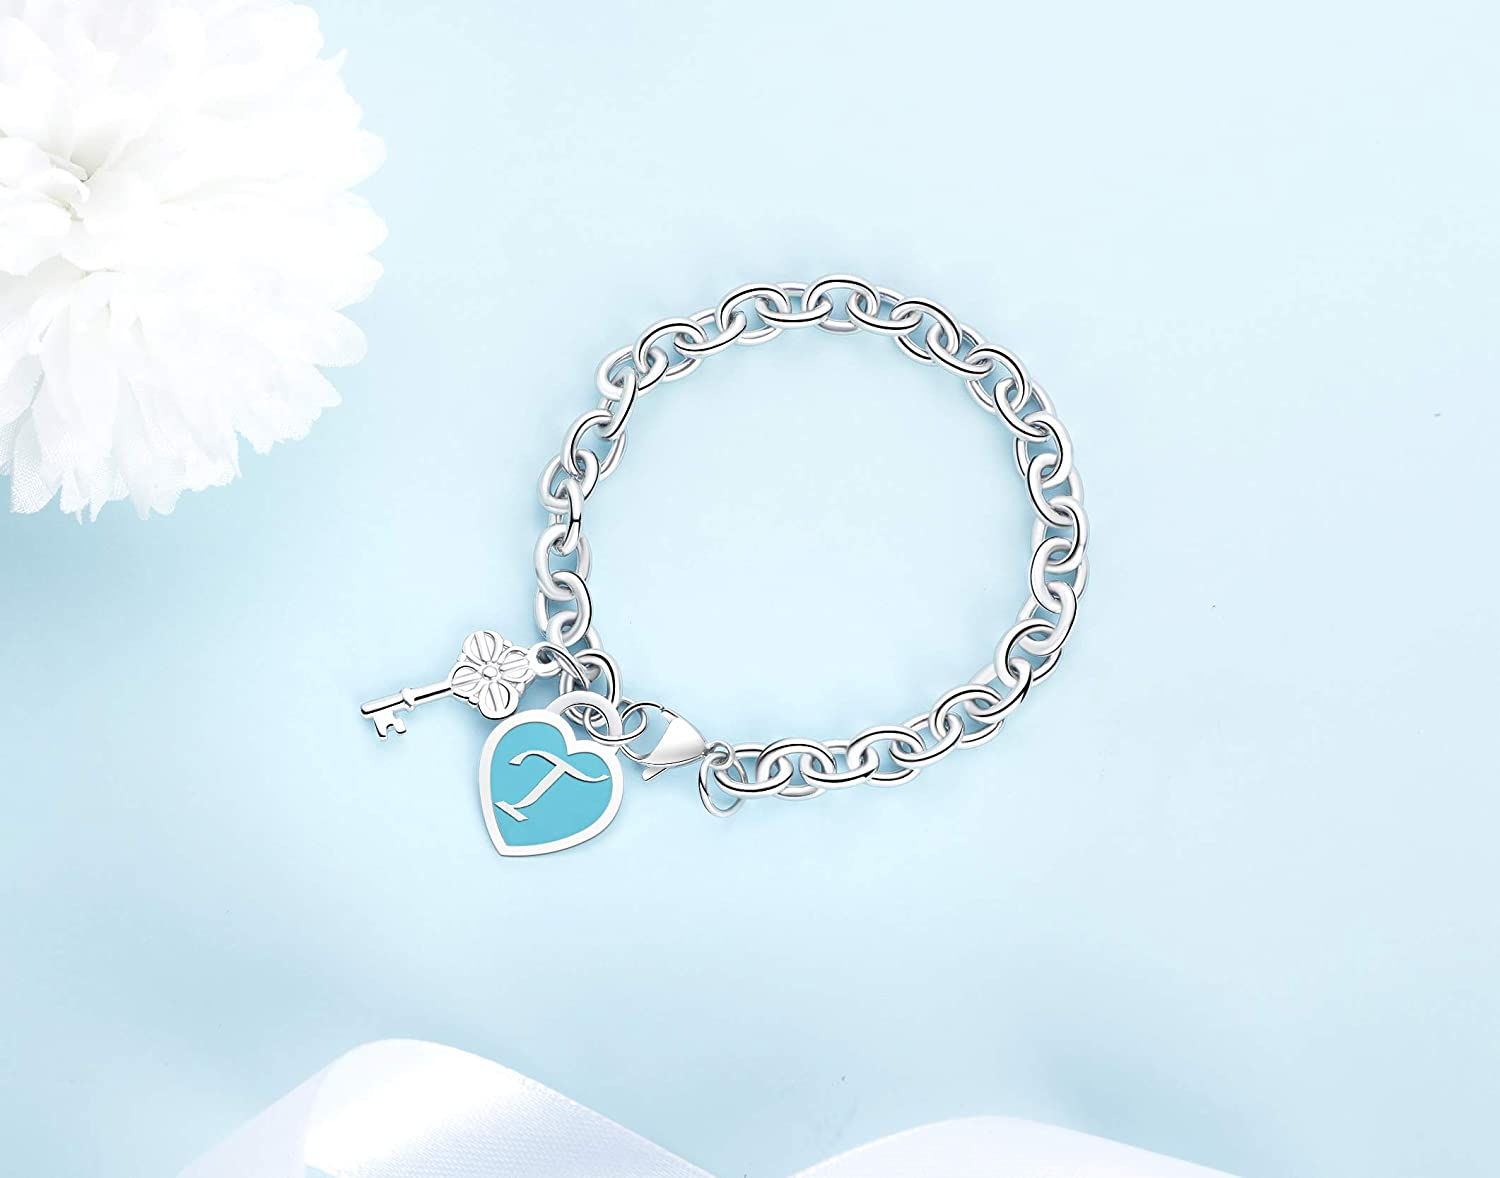 TONY /& SANDY/Initial Bracelets Heart Engraved 26 Letters Charms Bracelet Stainless Steel Silver Alphabet Bracelet with Cute Key Birthday Christmas Jewelry Gift for Women Teen Girls